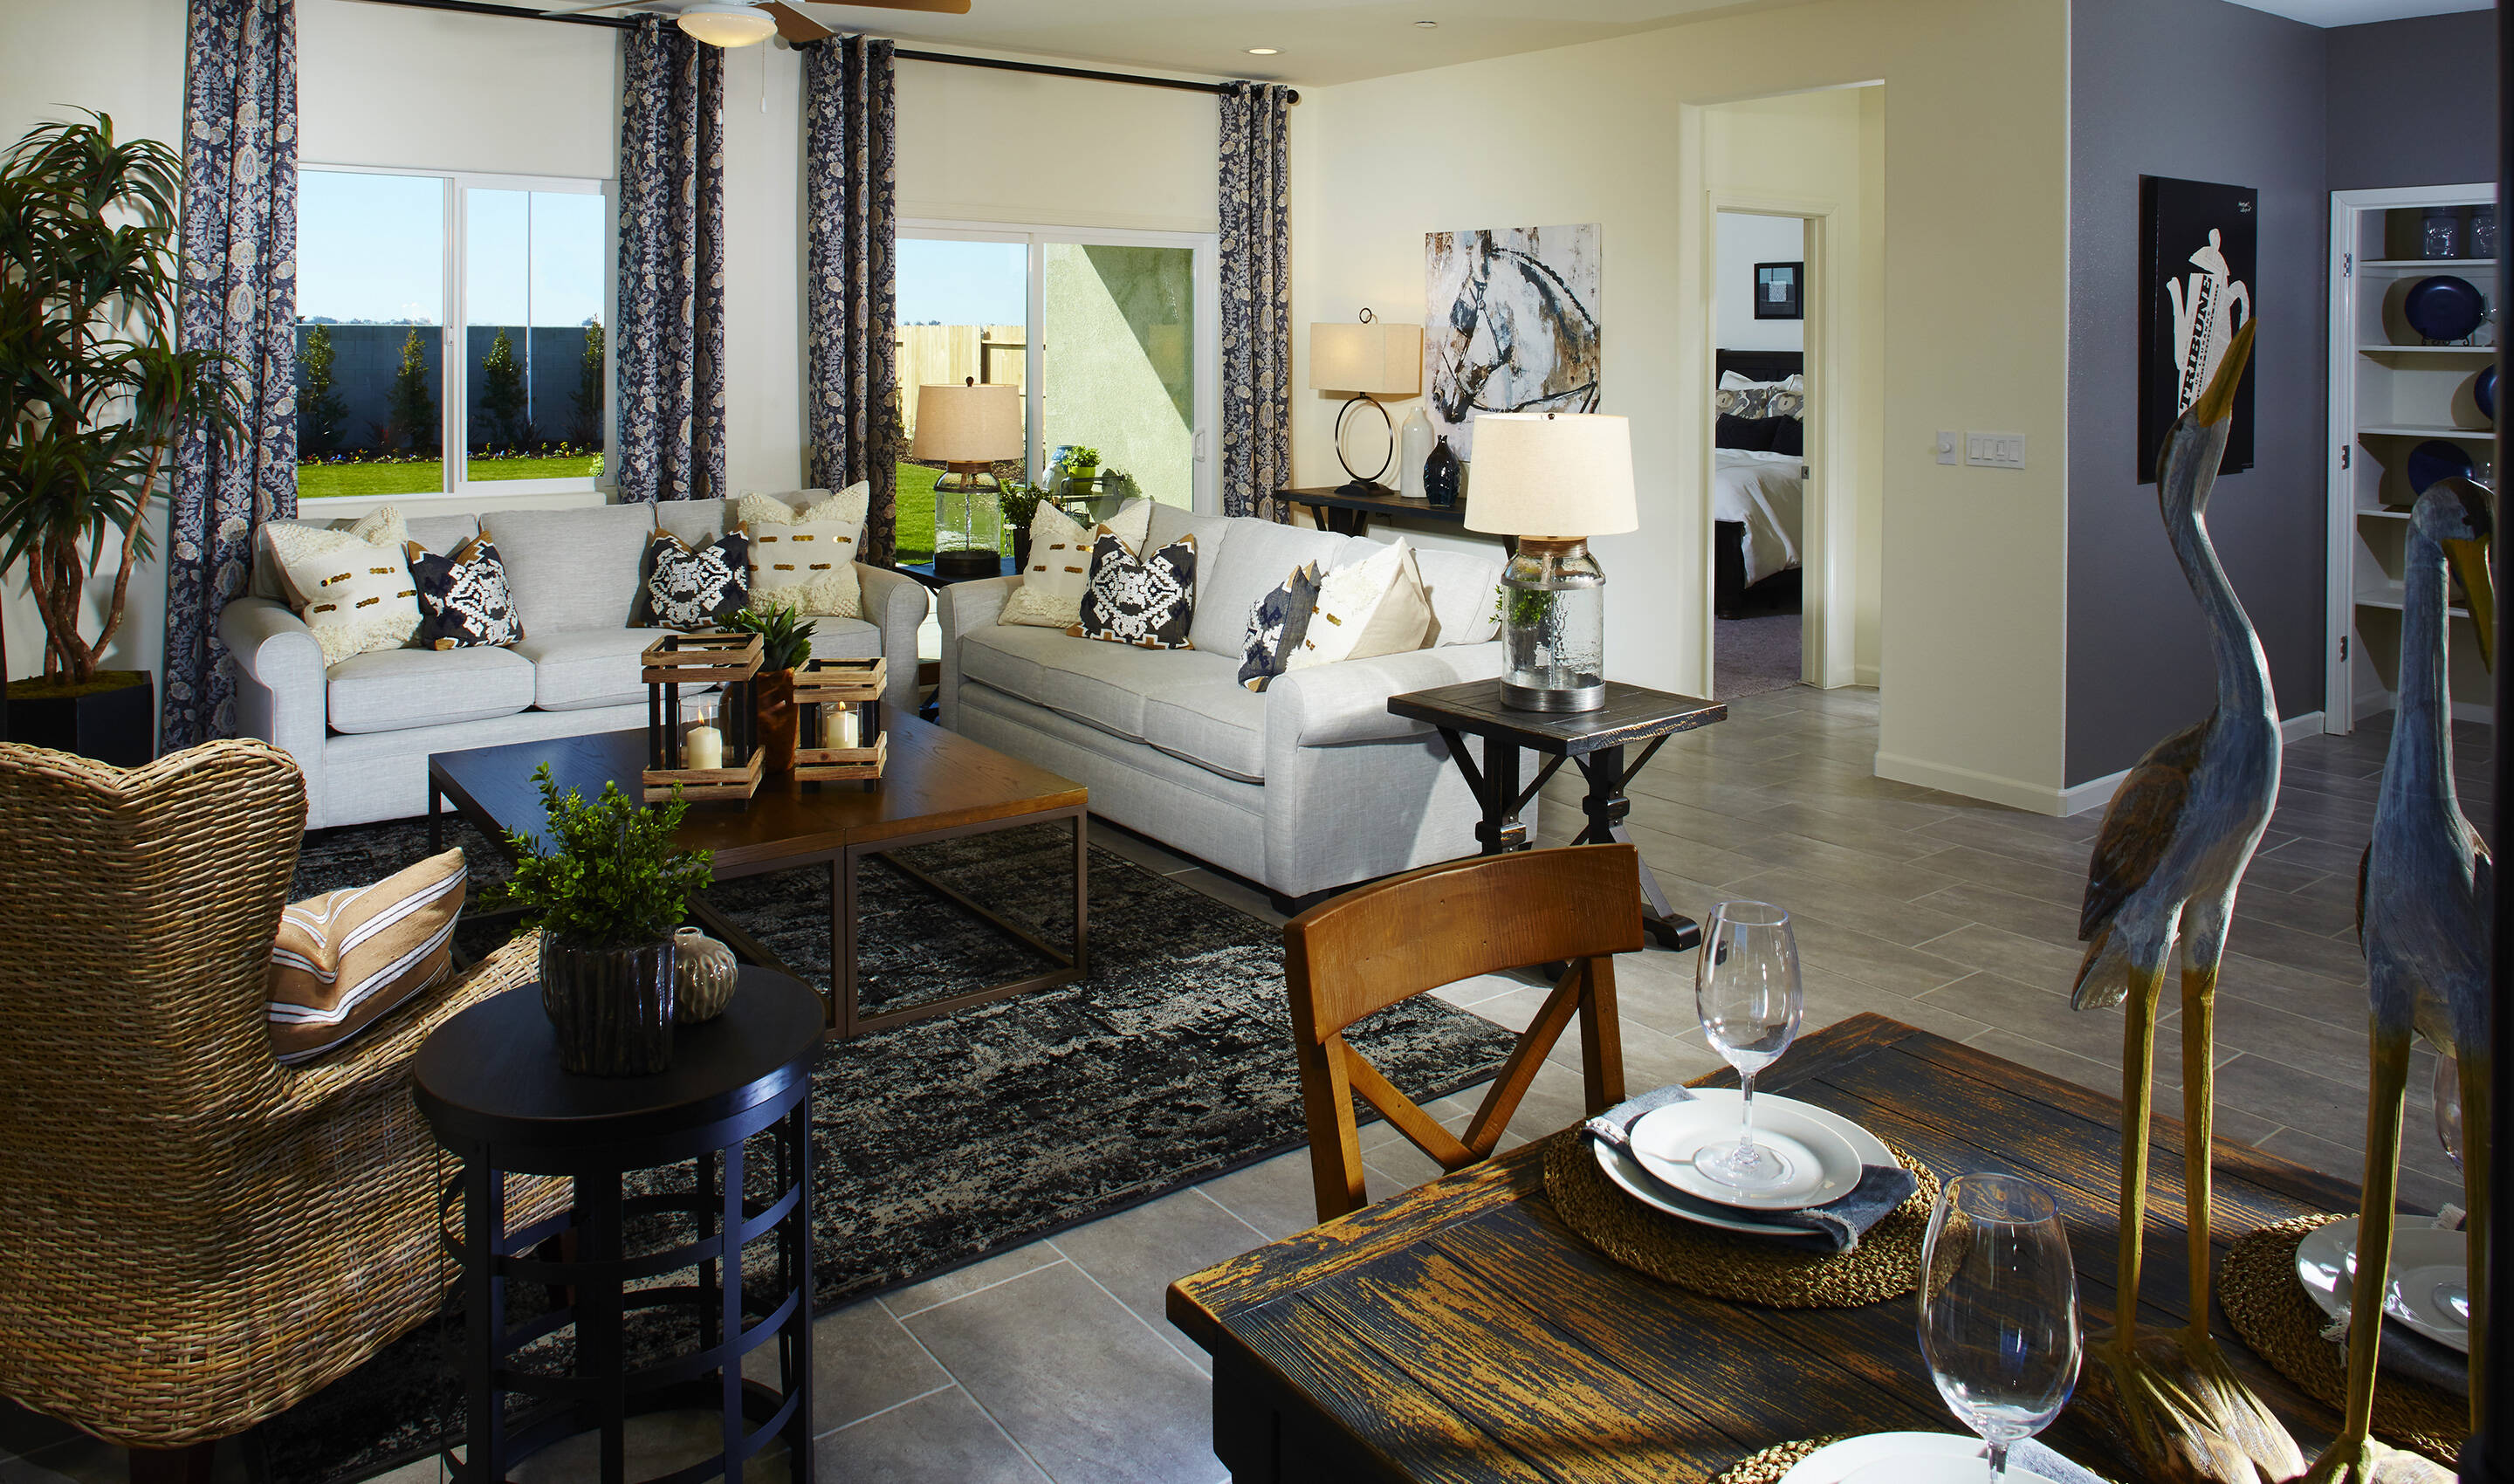 yosemitie-great-room-aspire-at-bellevue-new-homes-merced-ca